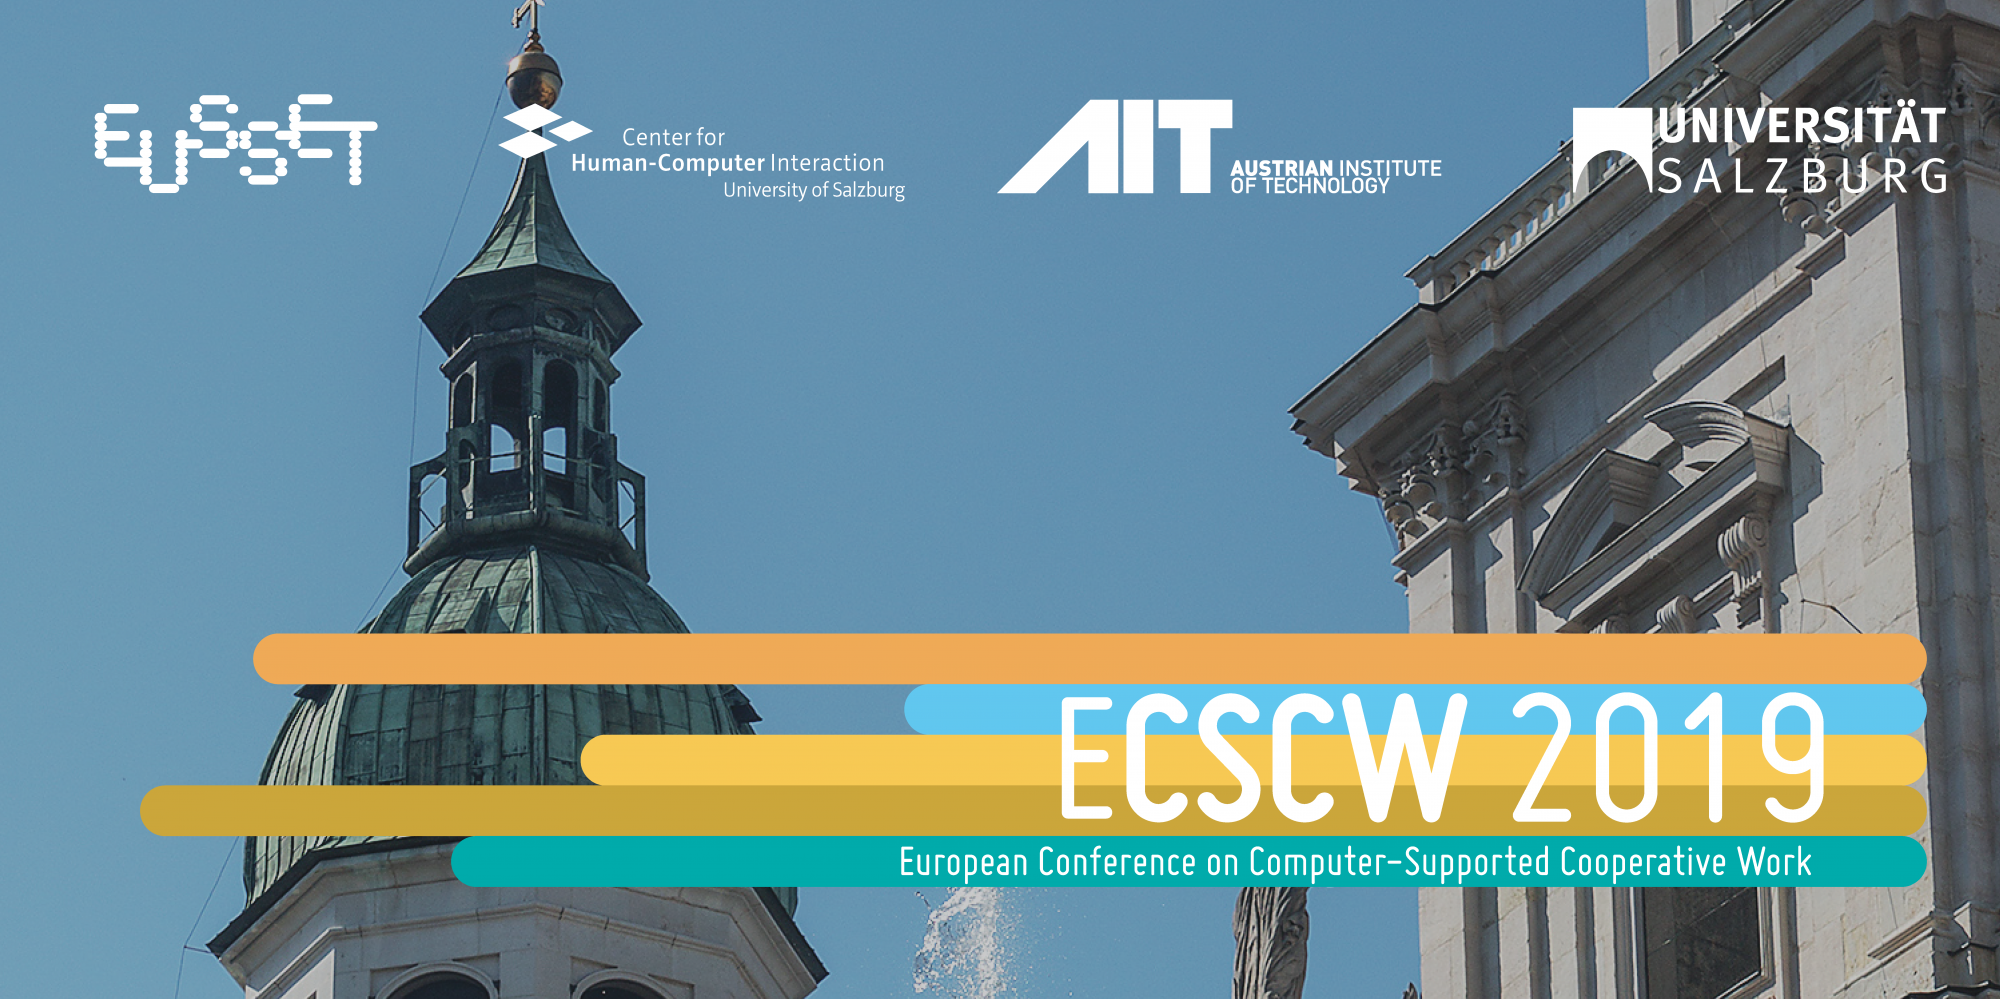 ECSCW 2019 – The 17th European Conference on Computer-Supported Cooperative Work